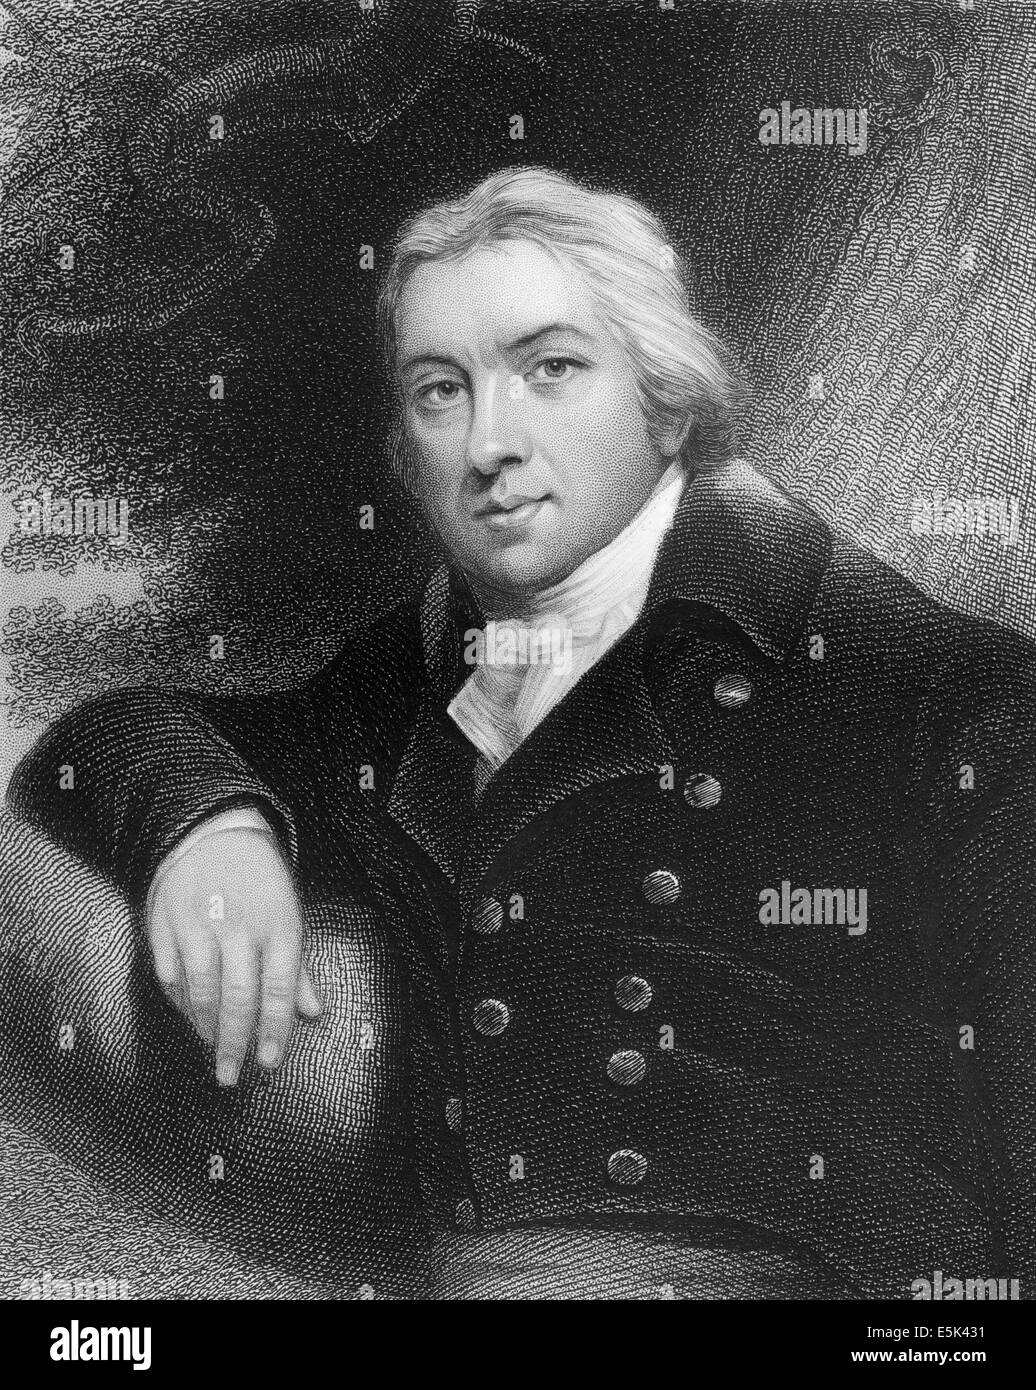 Edward Jenner, 1749-1823, an English physician and scientist, Stock Photo